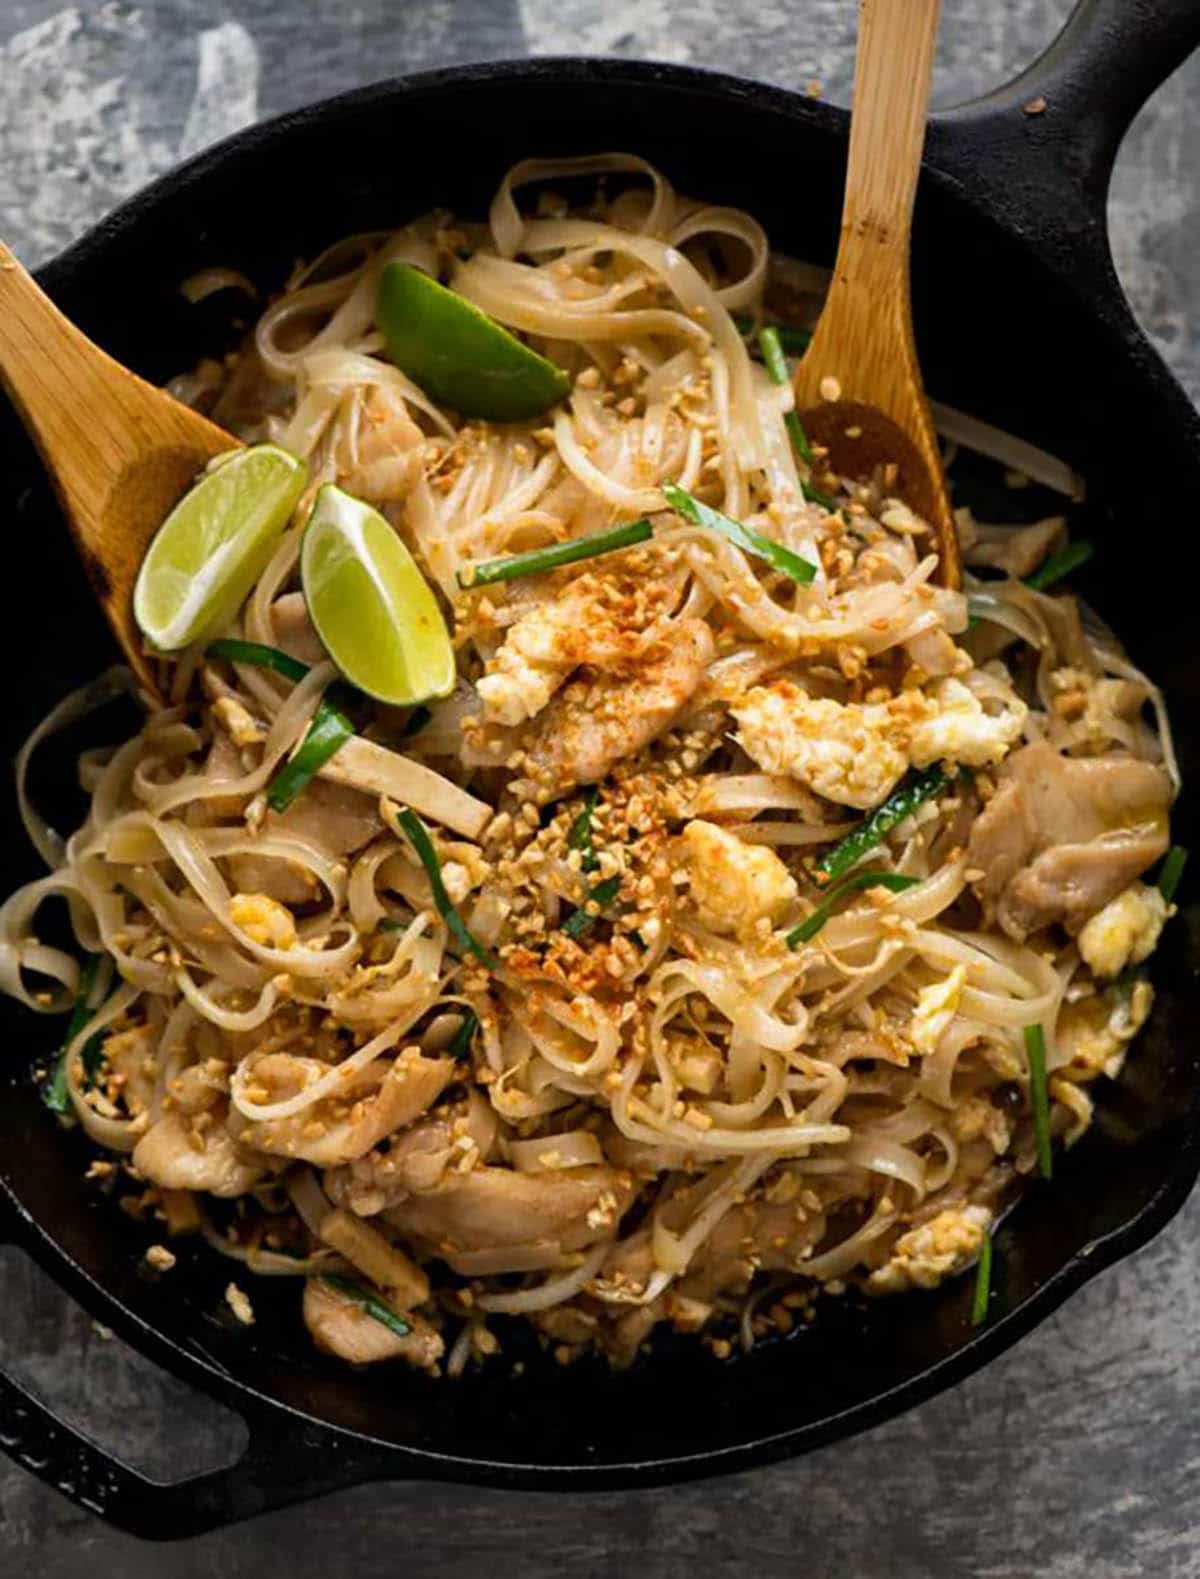 Chicken Pad Thai with lemon wedges in a cast iron skillet